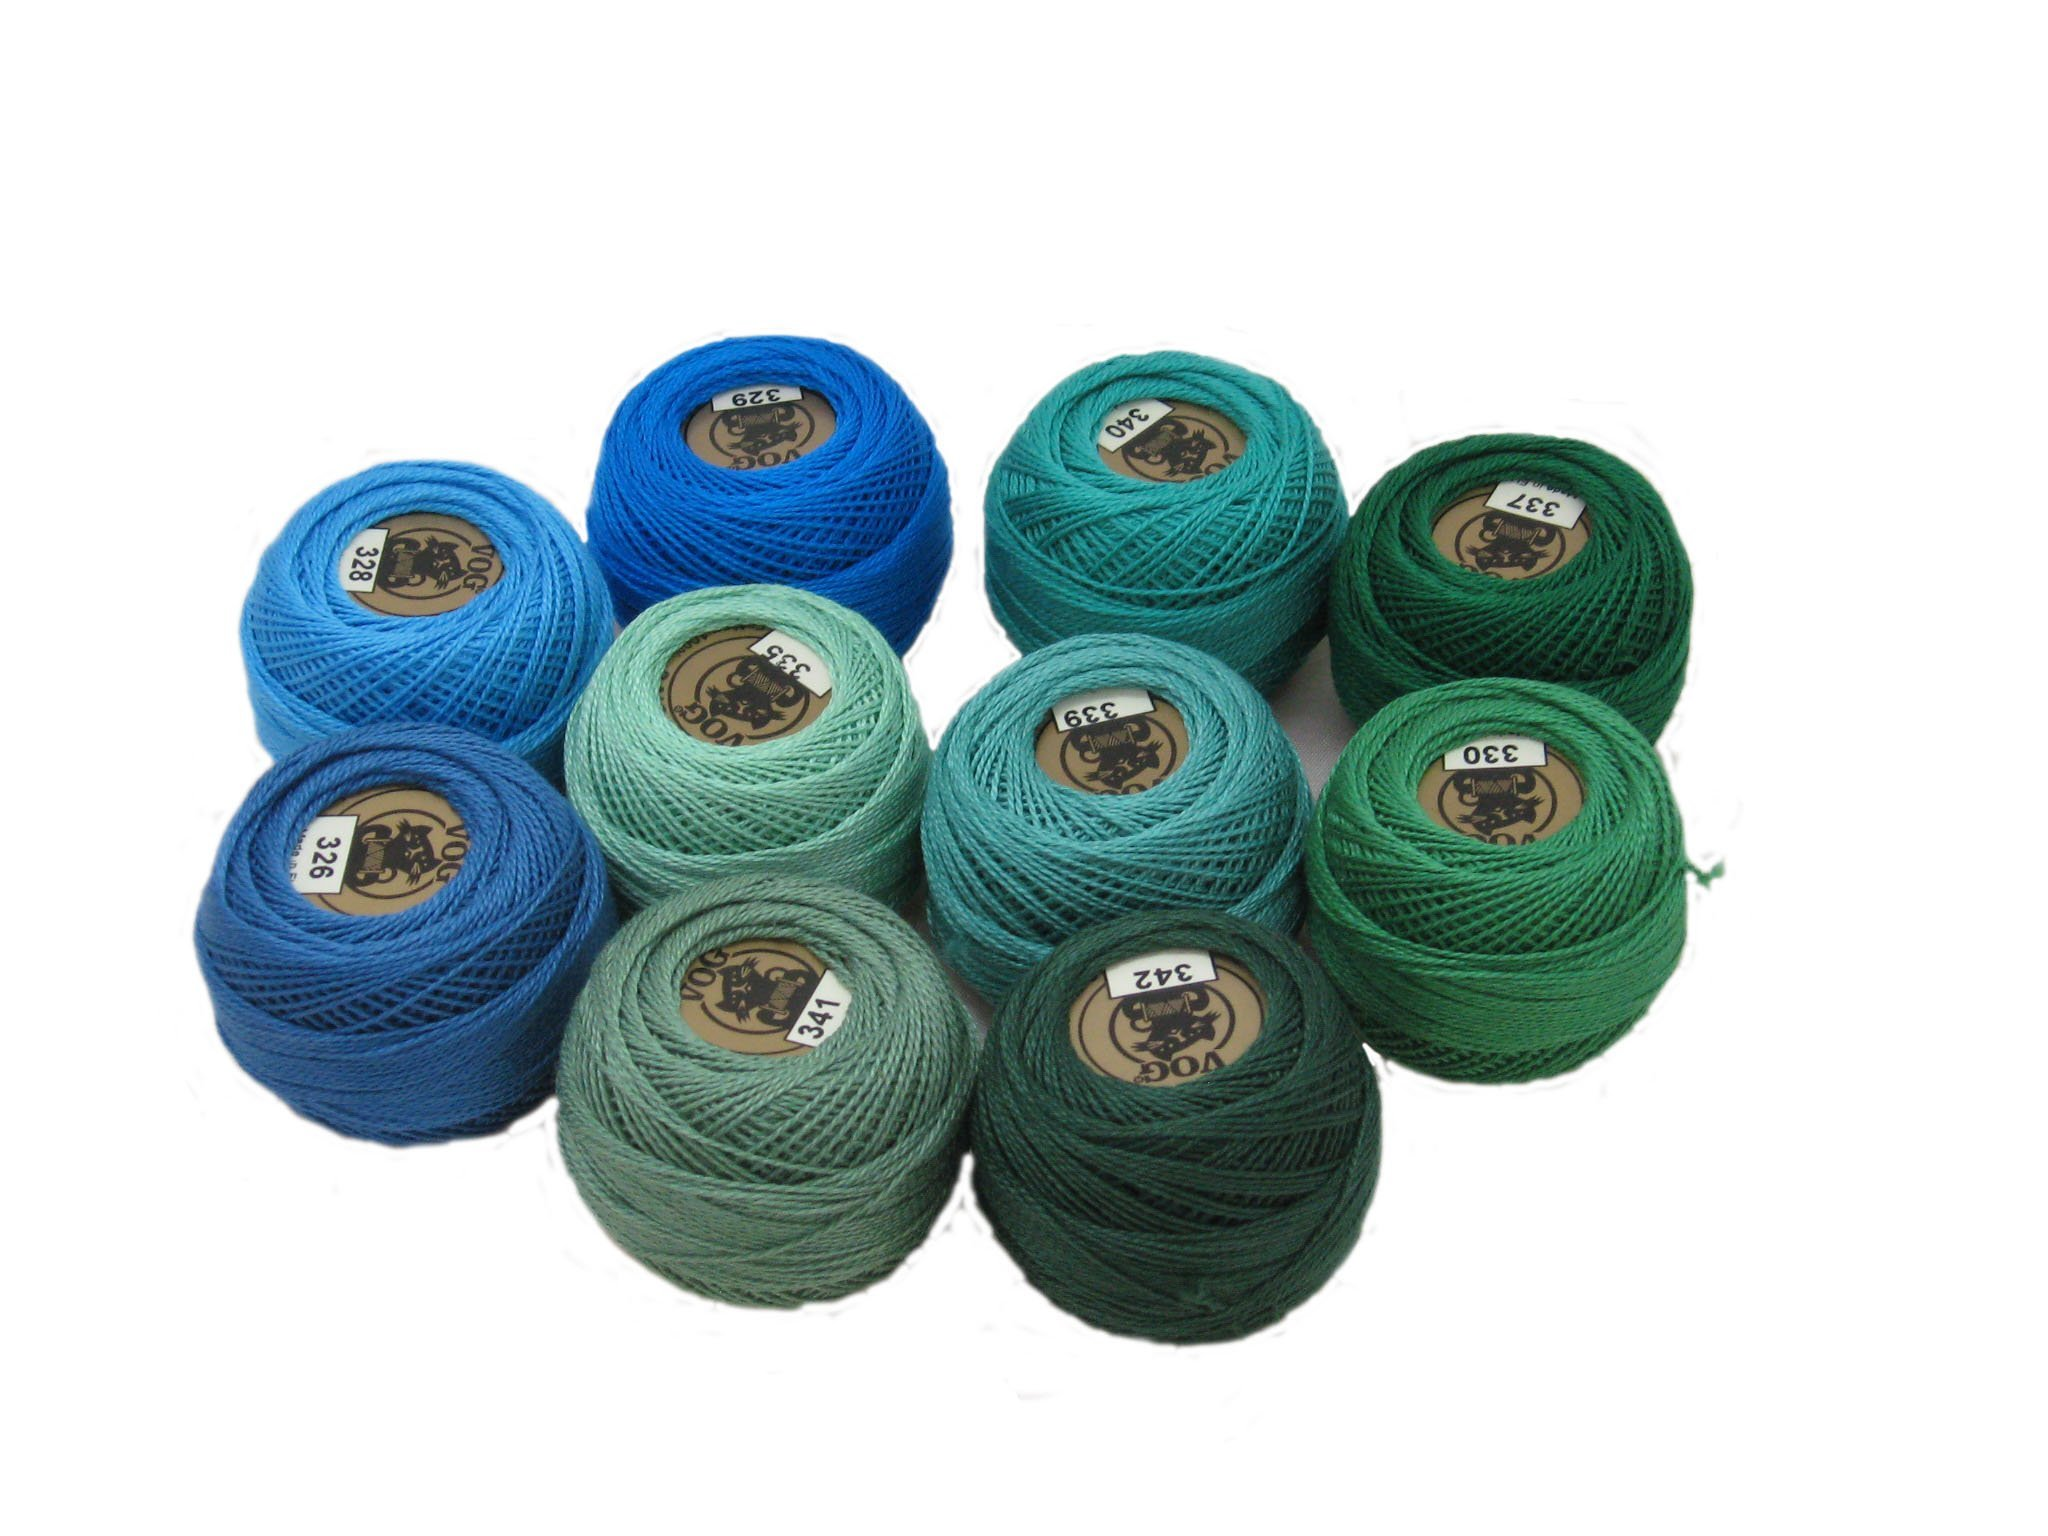 Vog Perle Cotton Size 8 Embroidery Threads - Set of 10 Balls (10gr Each) - Blue and Green Shades (column No. 5) by Vog